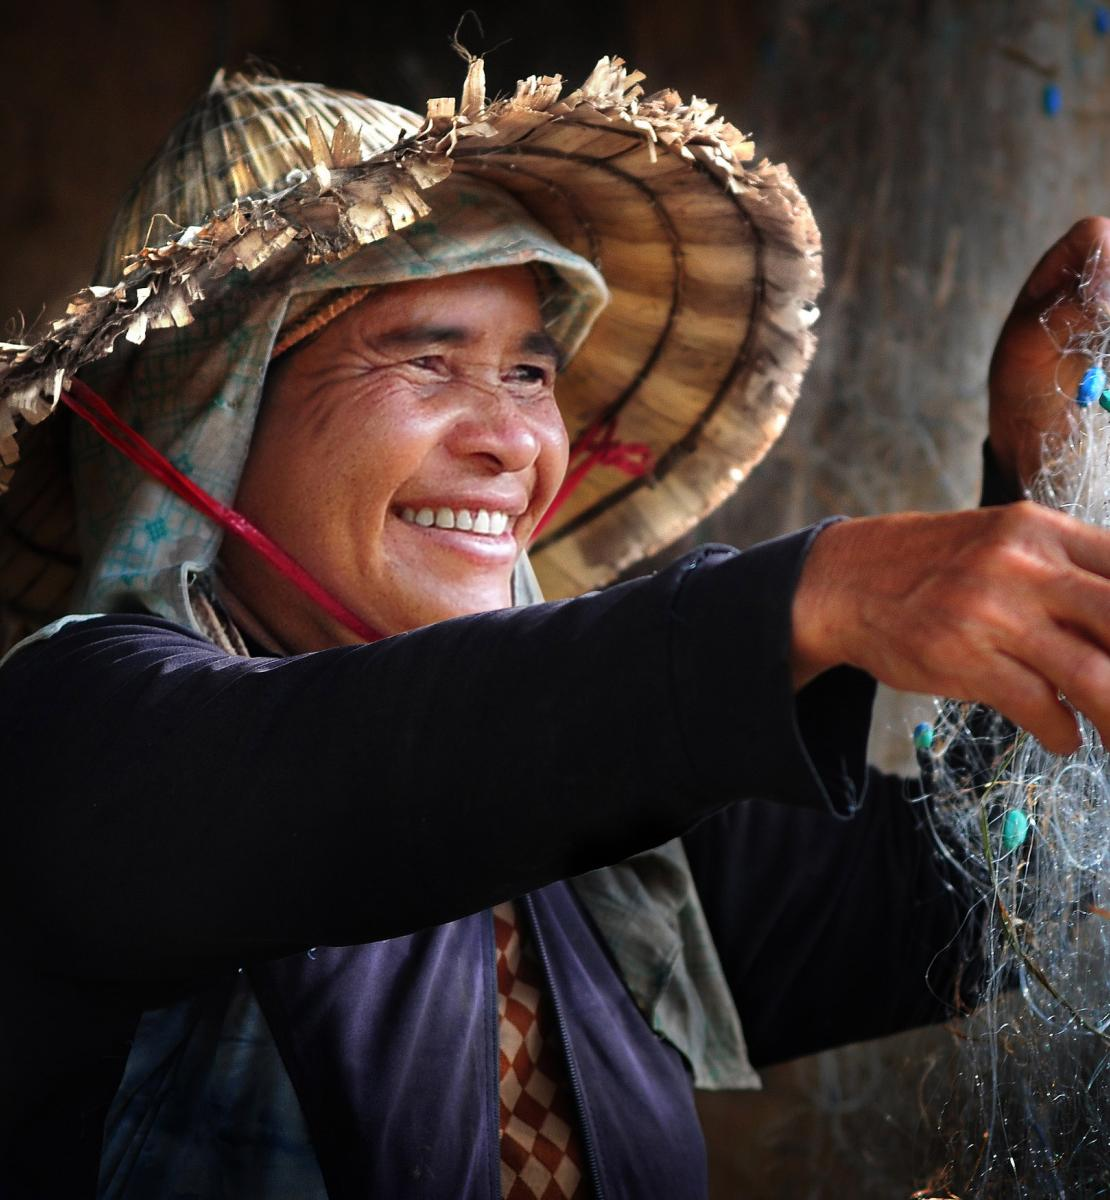 A woman happily dries out a fishing net.